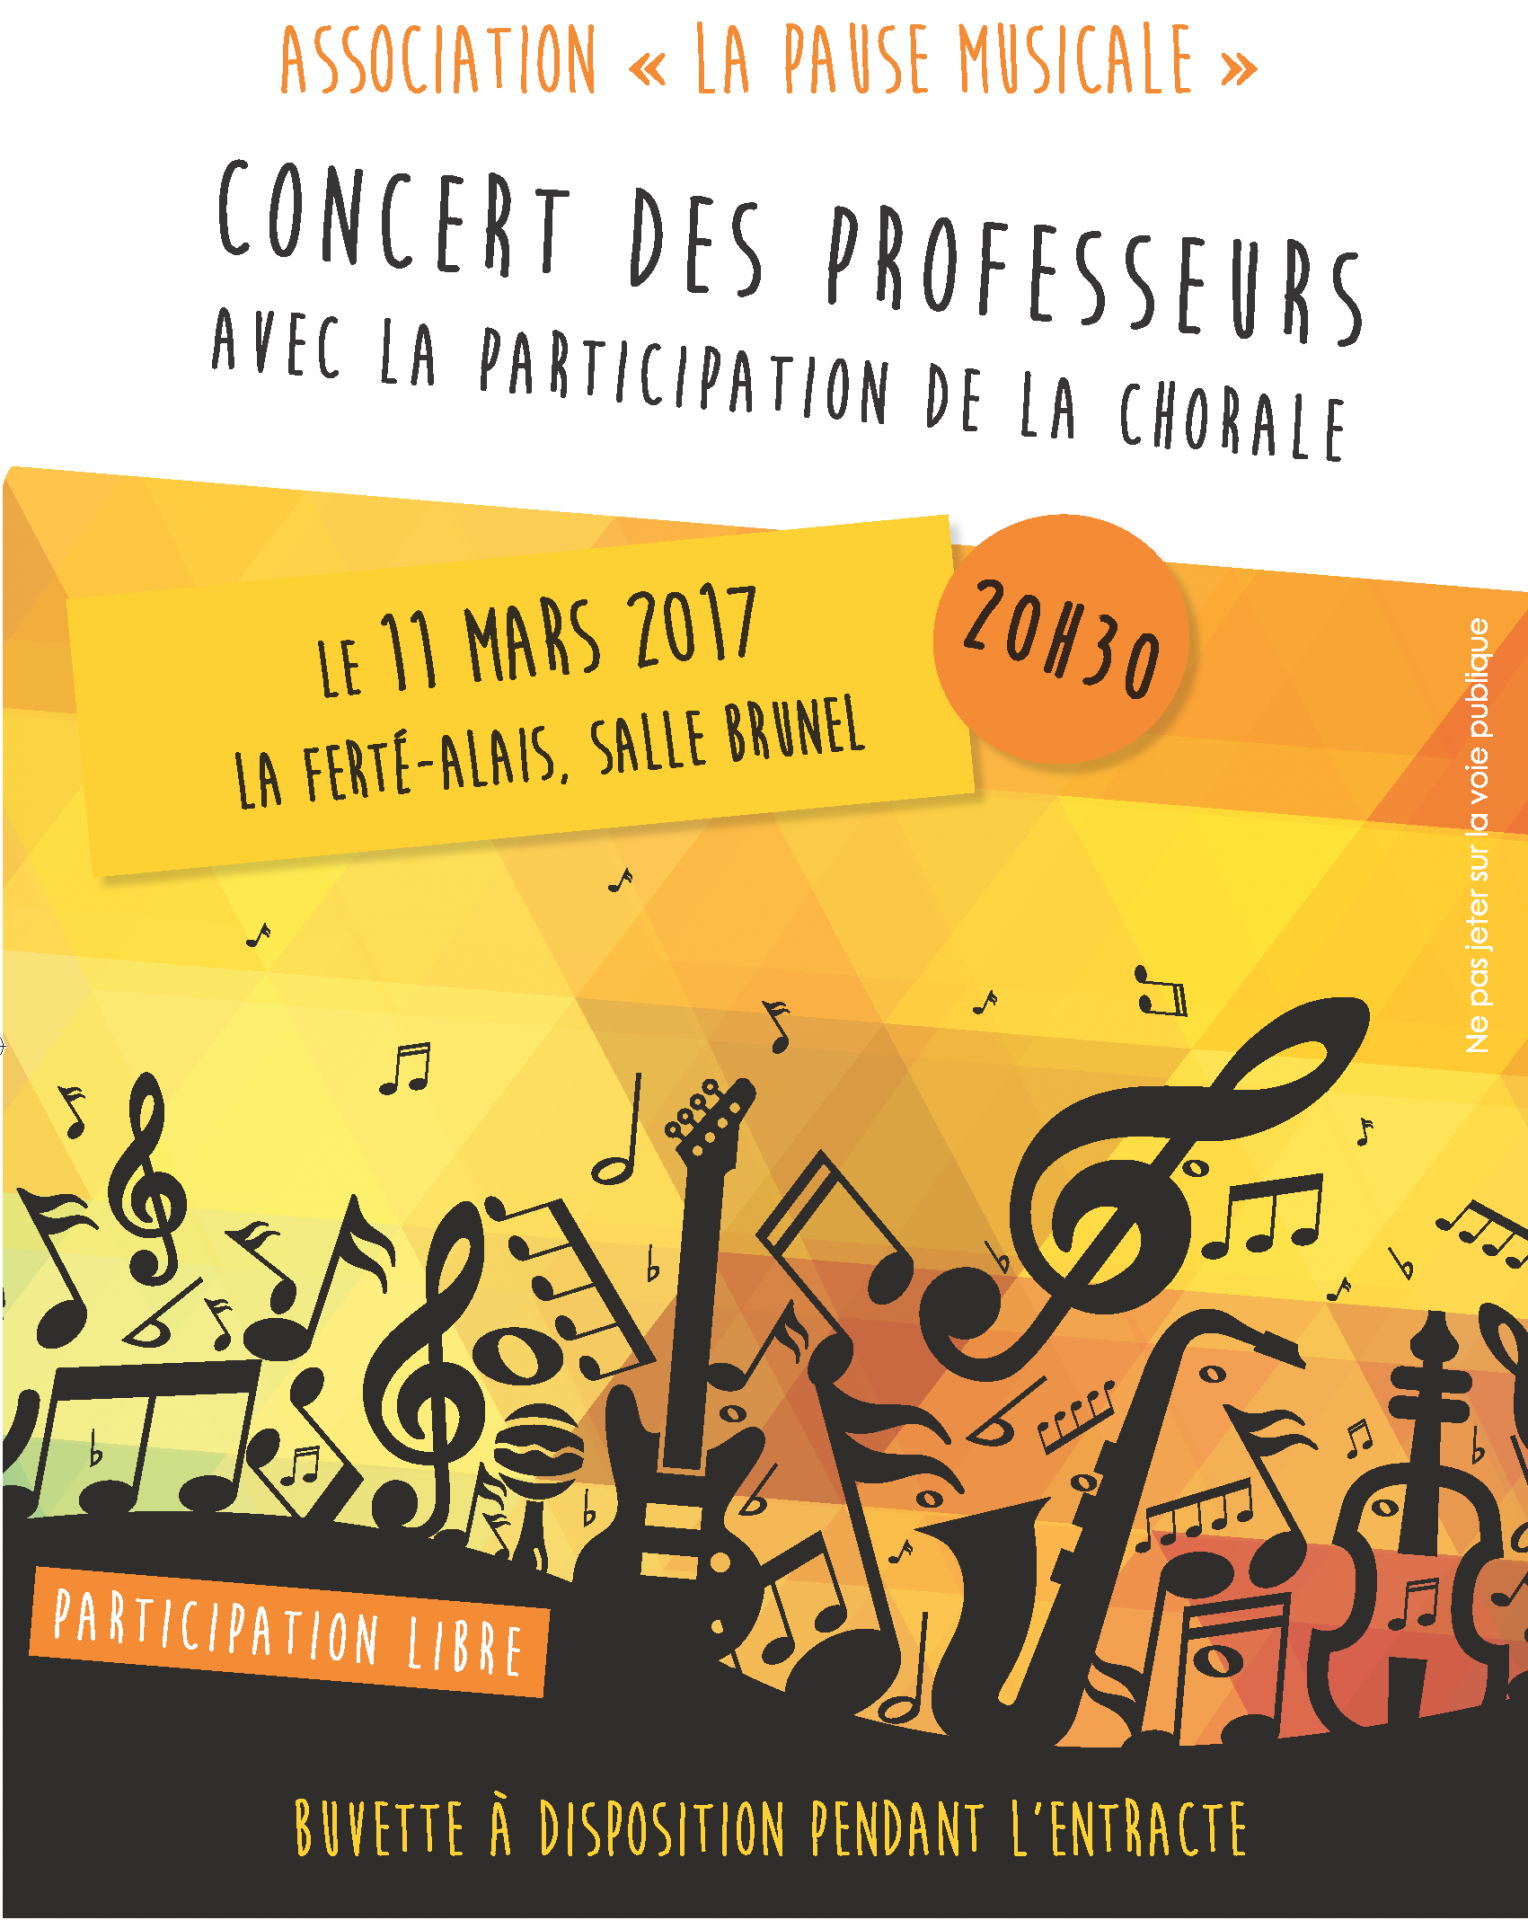 Affichette asso pause musicale a4 impression